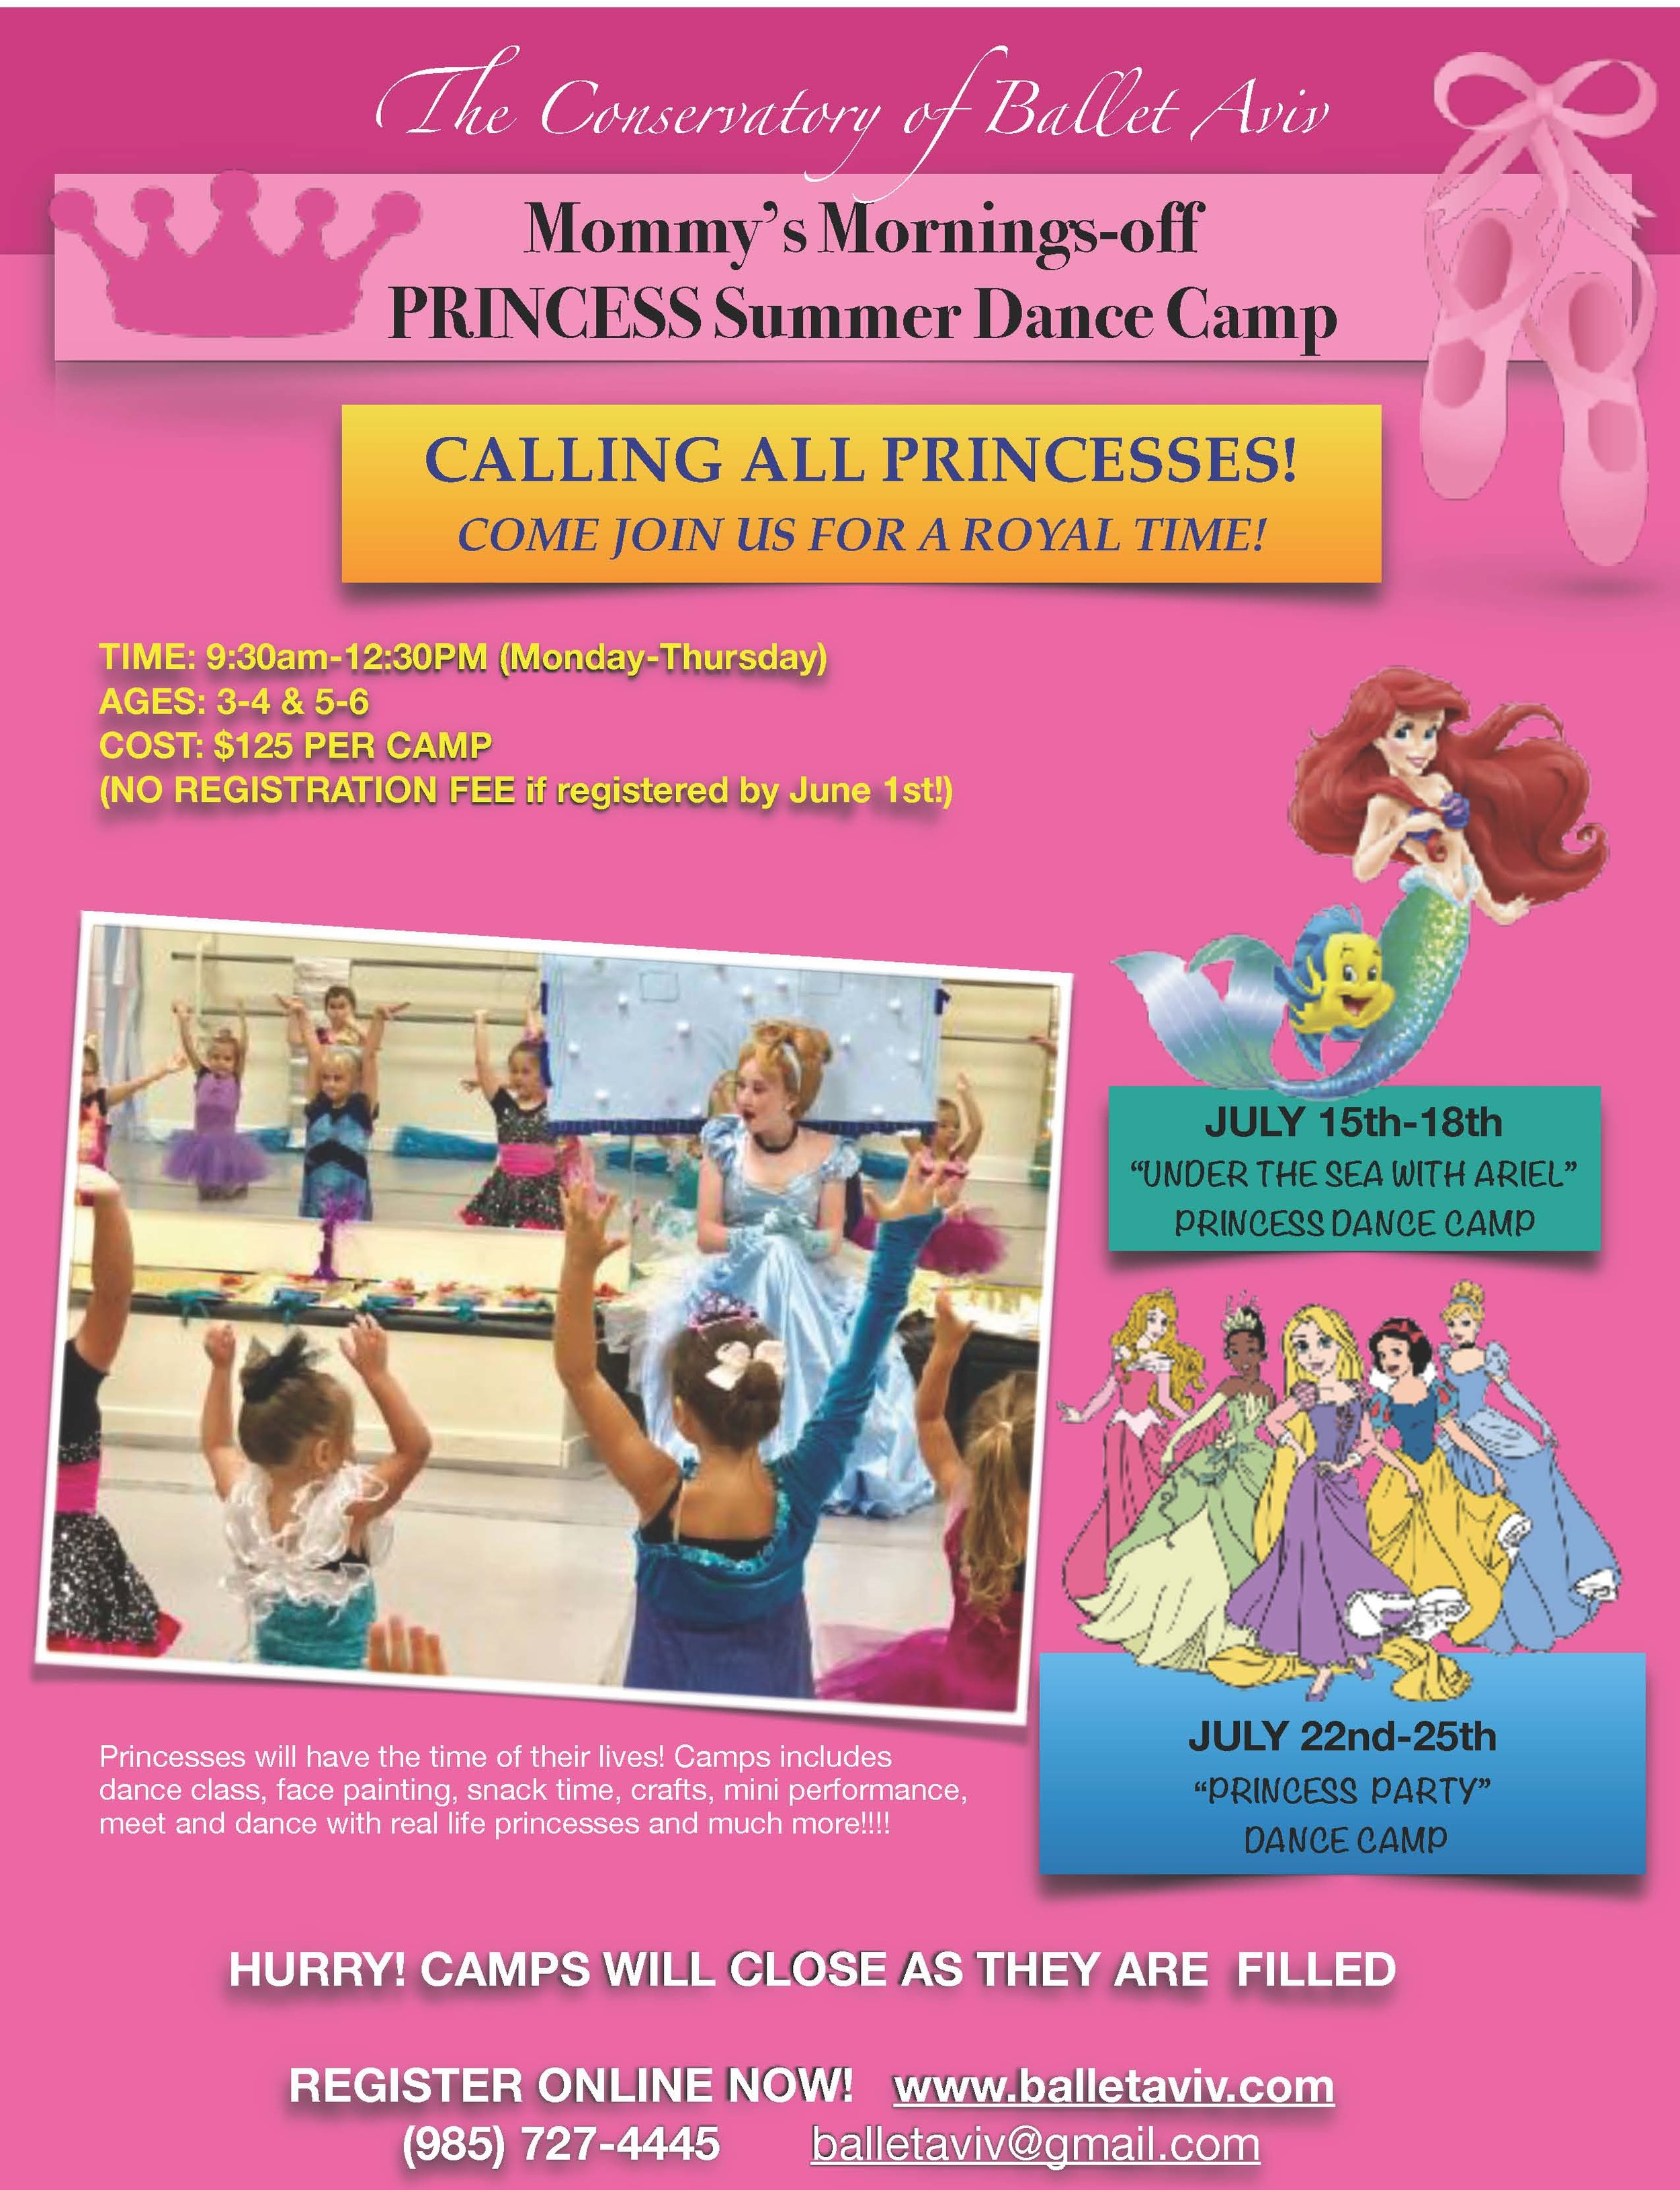 2019 PRINCESS DANCE CAMP .jpg